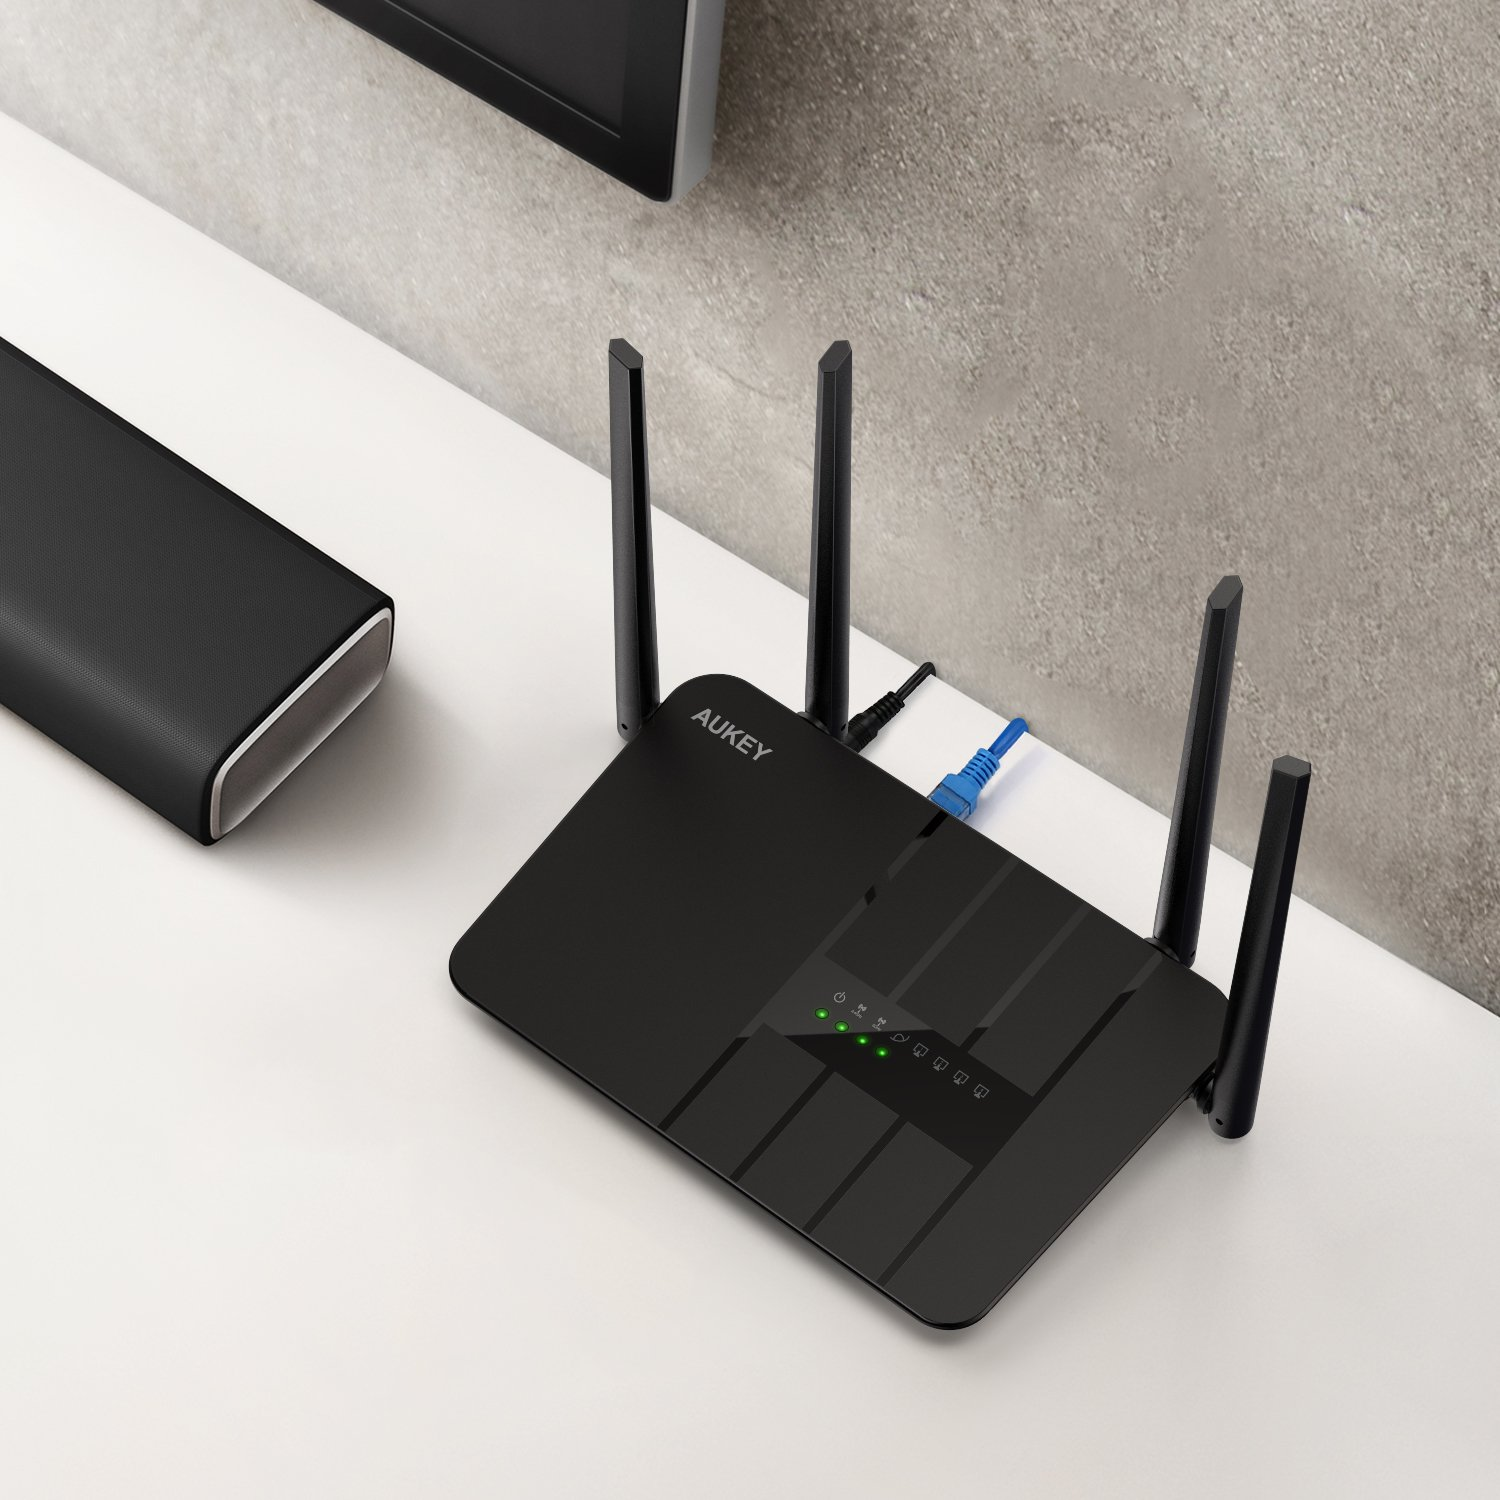 AUKEY Wifi Router AC1200 Dual Band Wireless Router with 4 Antennas, WPS Button, UK Plug